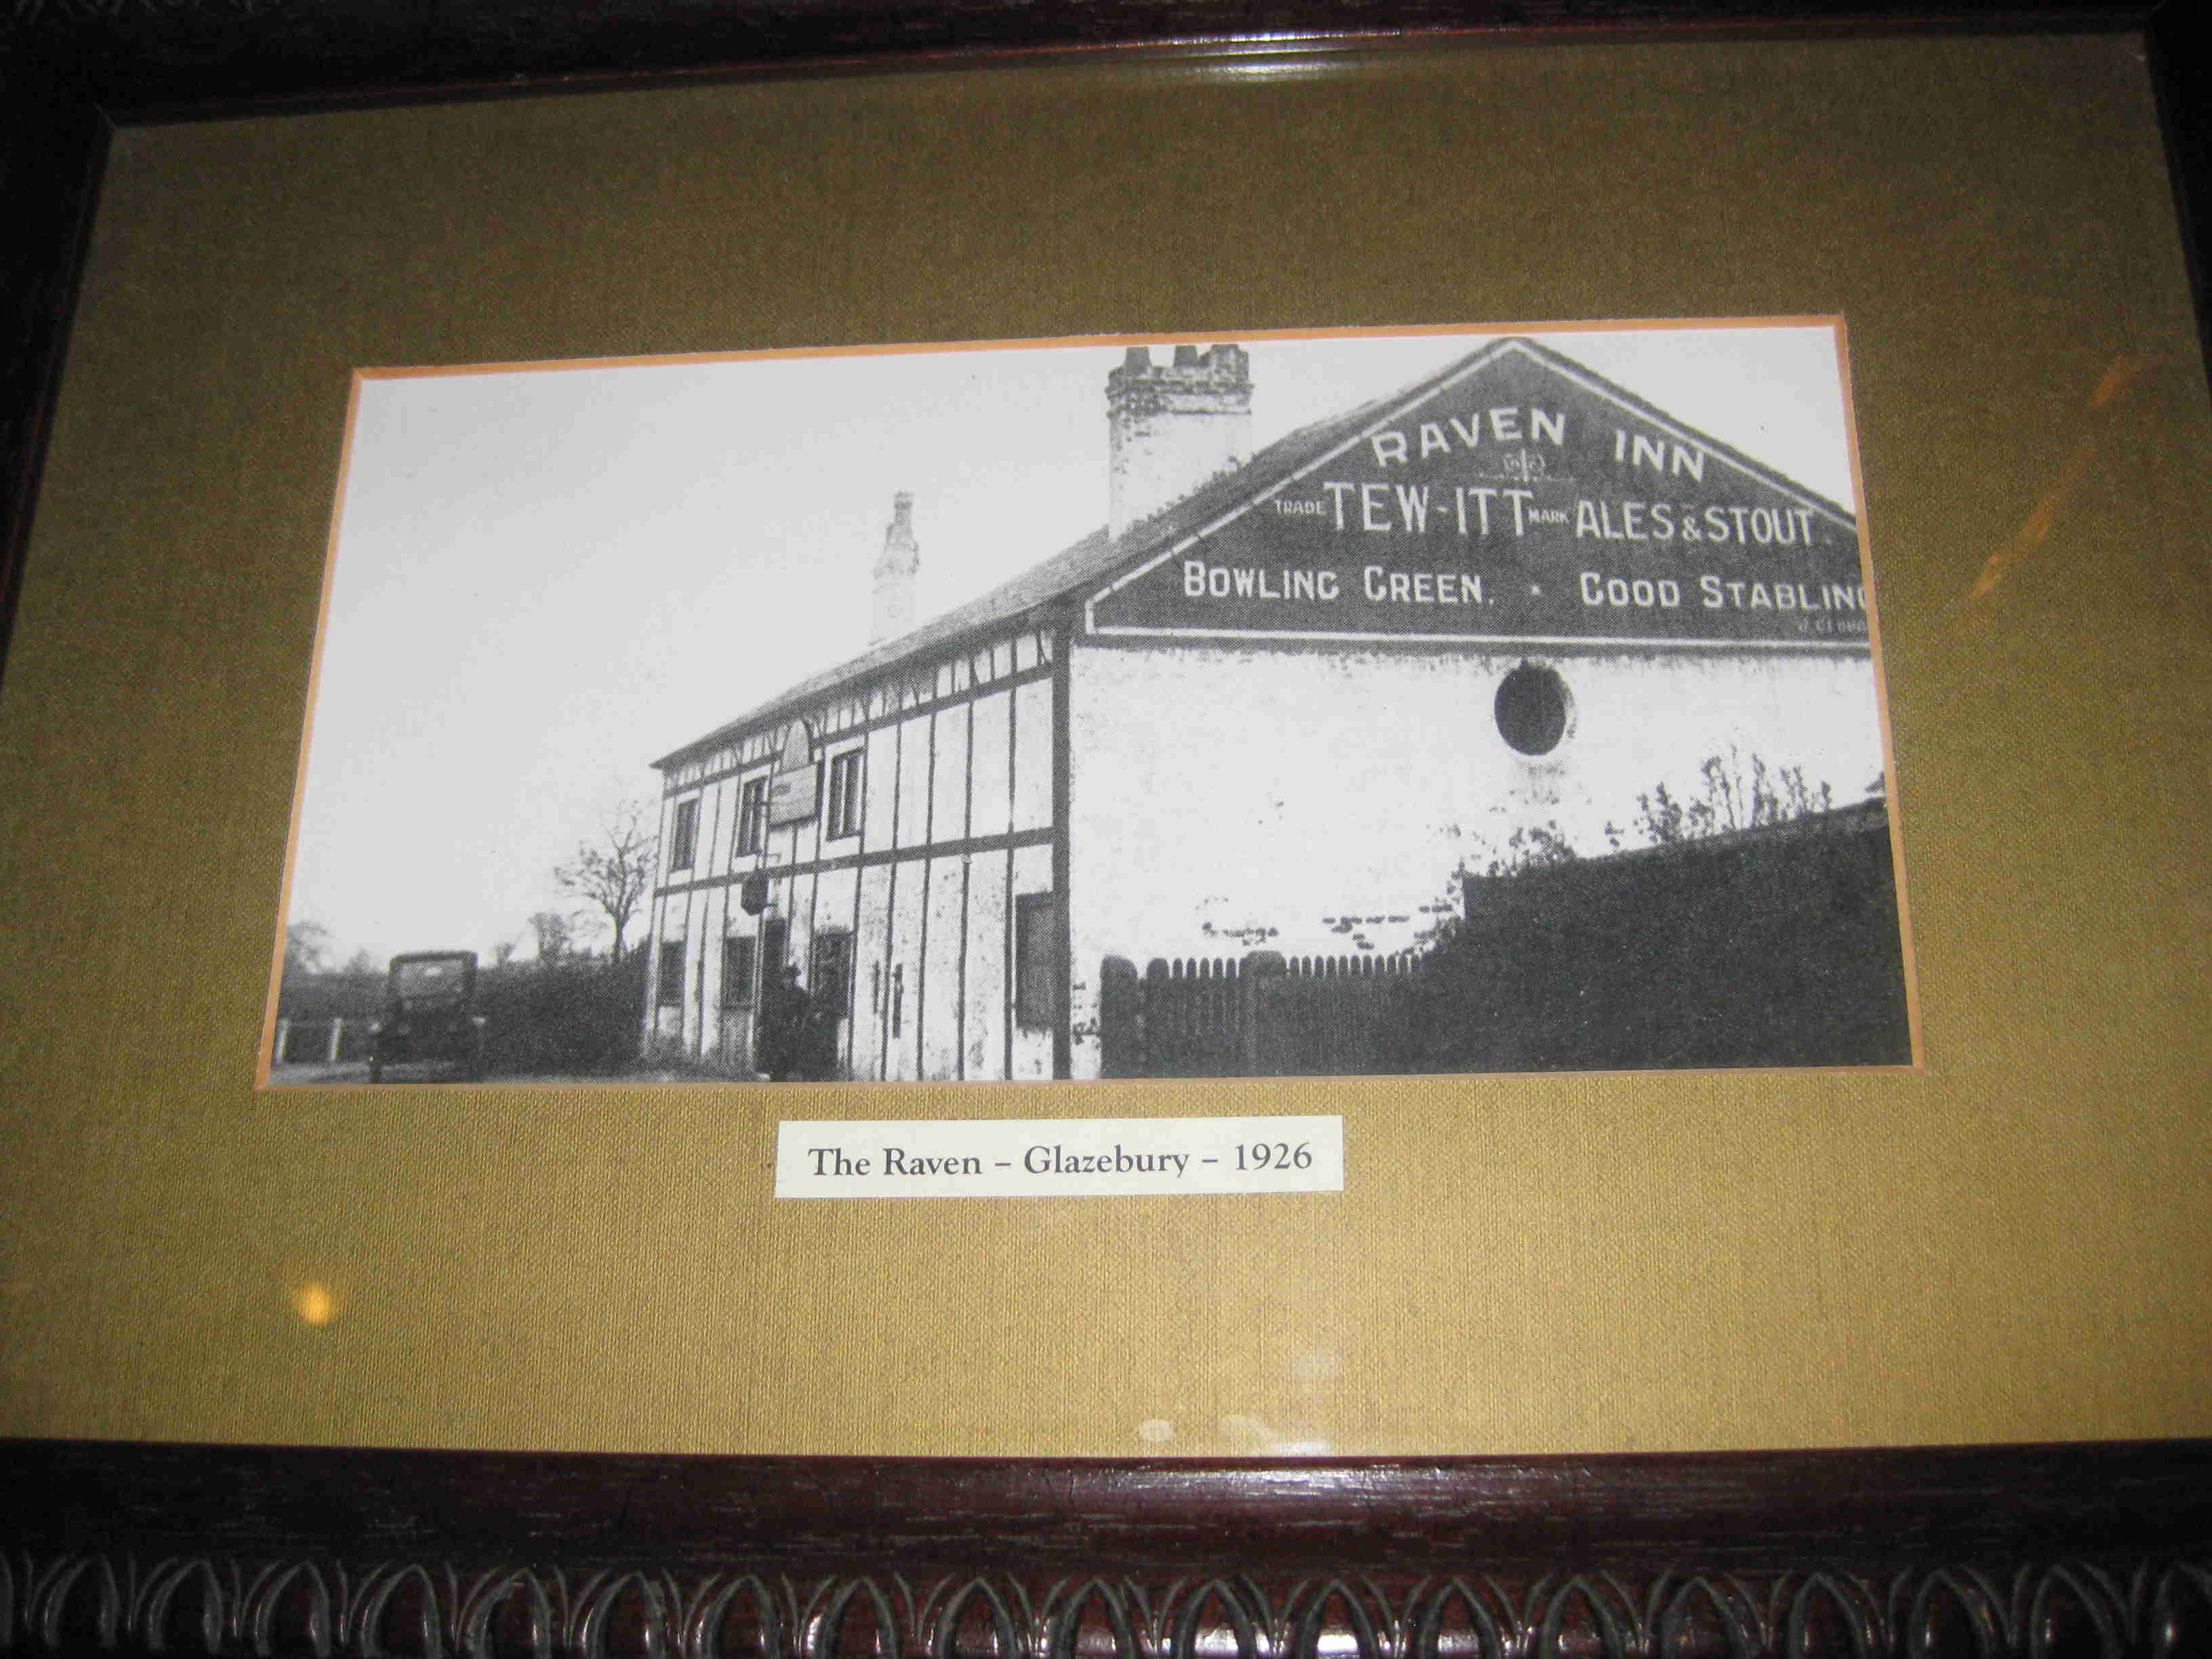 The Raven Inn Glazebury 1926 IMG 2093 copy1